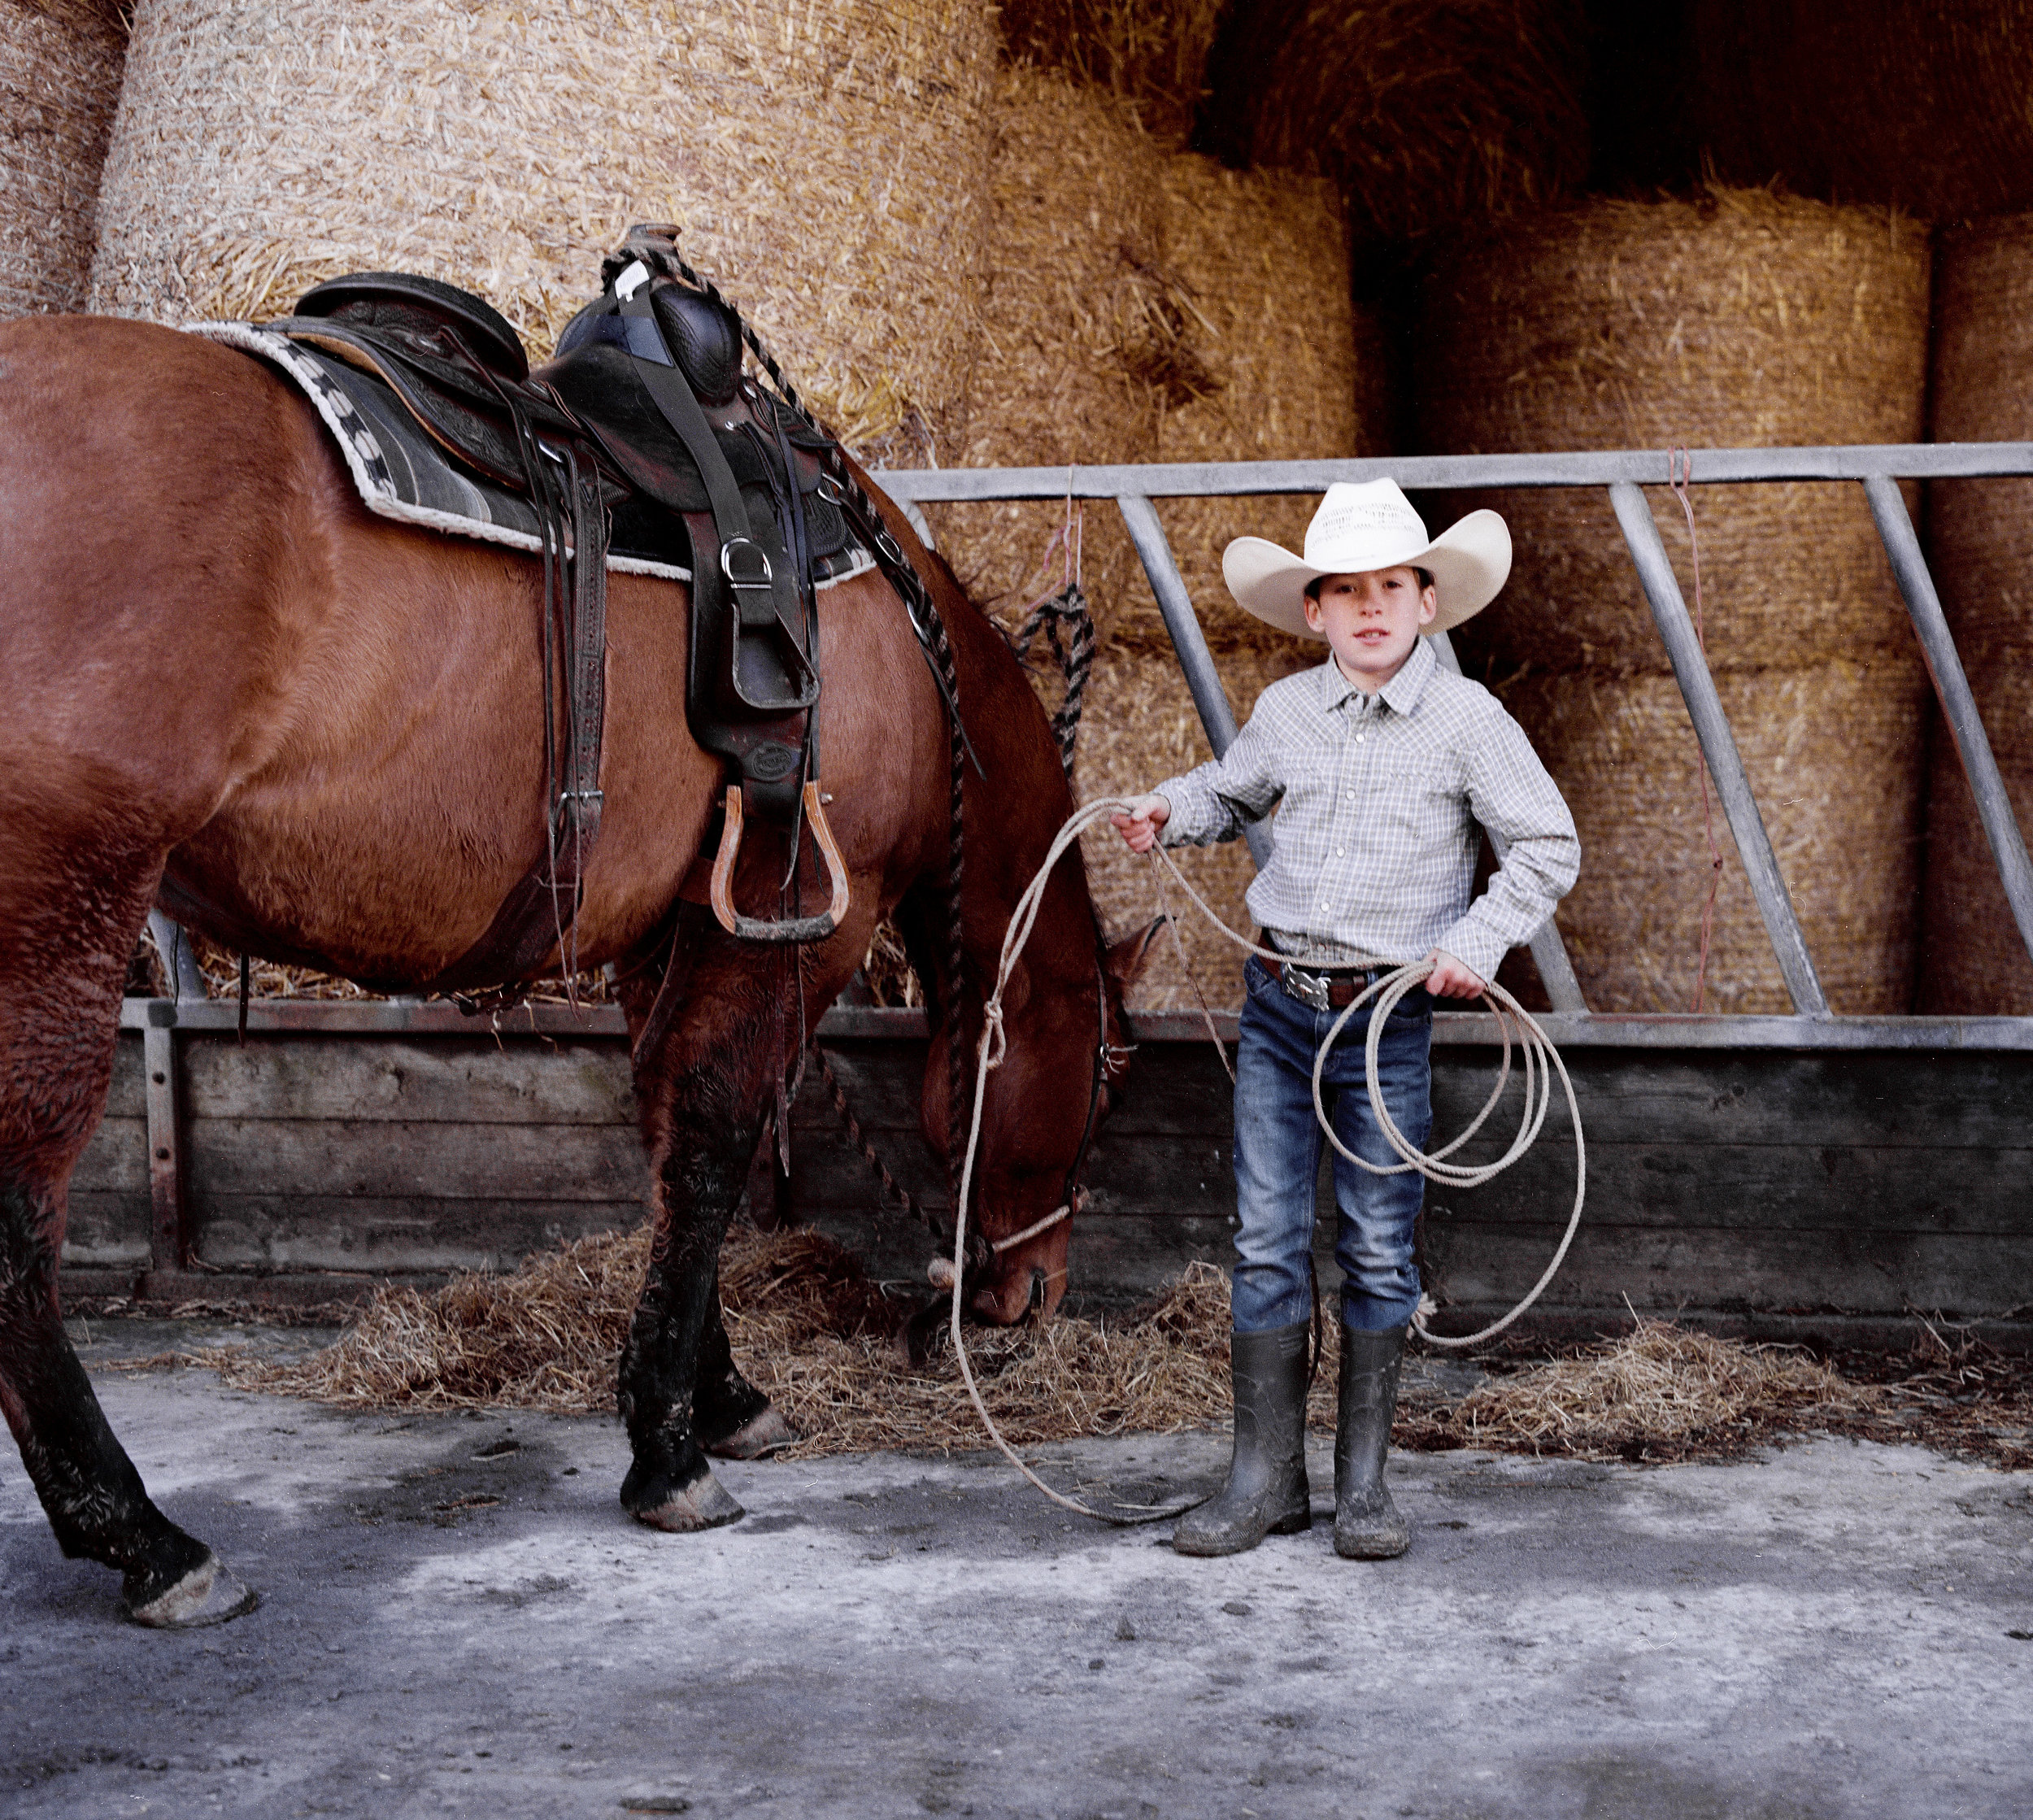 """Rueben Linscott practicing his Lassoing on his grandfathers ranch in Devon. Rueben has been taught how to ride and lasso by his grandfather Brian Rowden, who runs the western rodeo events in Devon. He currently prefers lassoing as he believes it is """"the hardest part about western riding""""."""